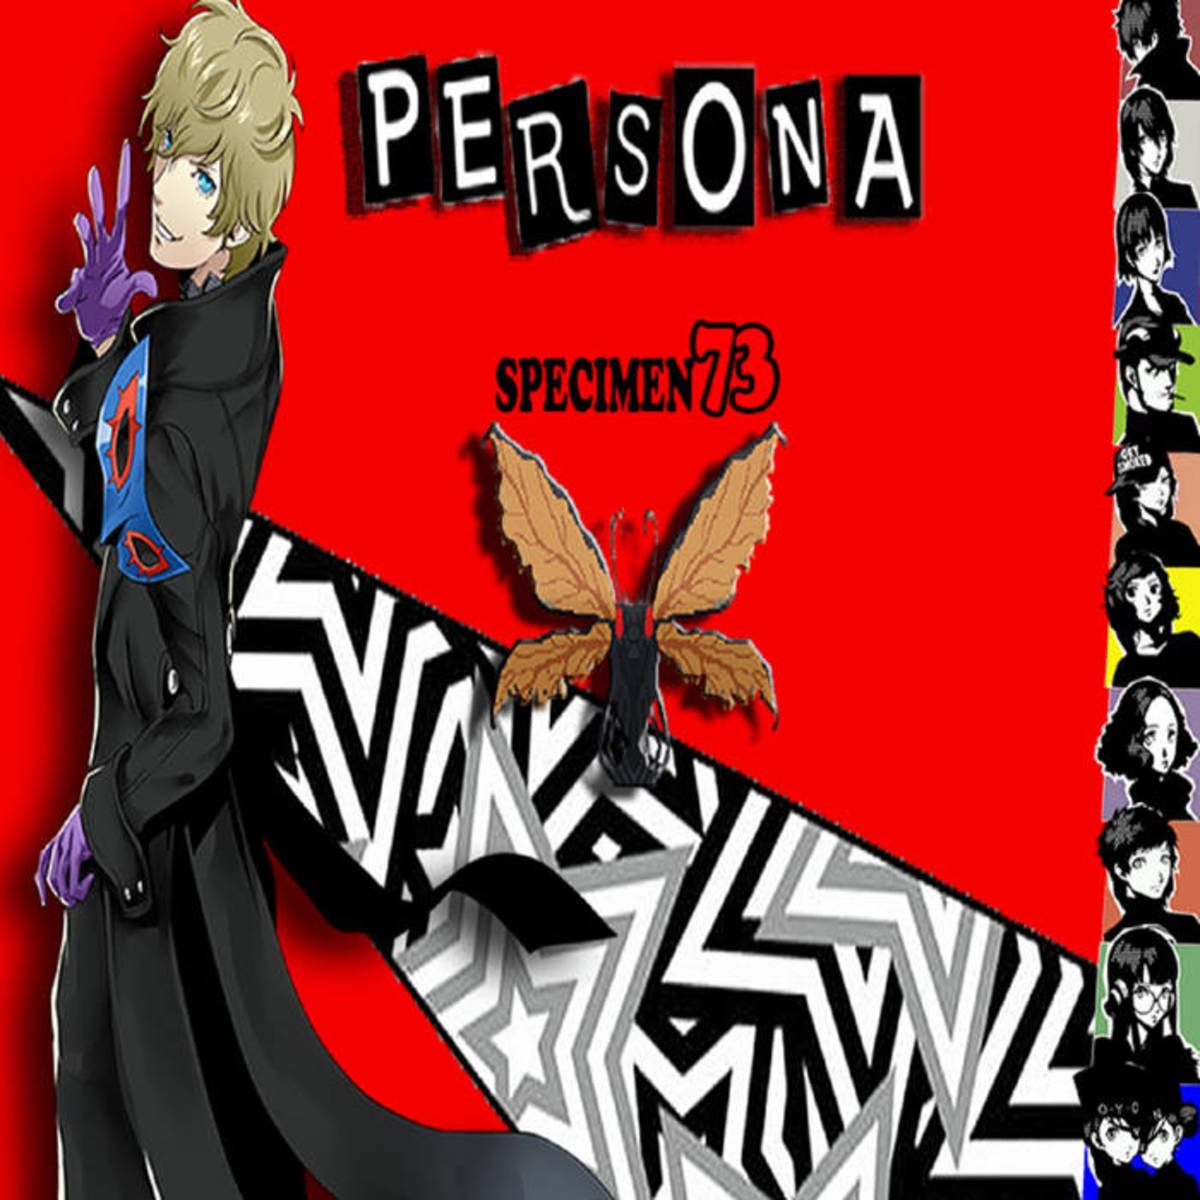 synth-album-review-persona-by-specimen-73